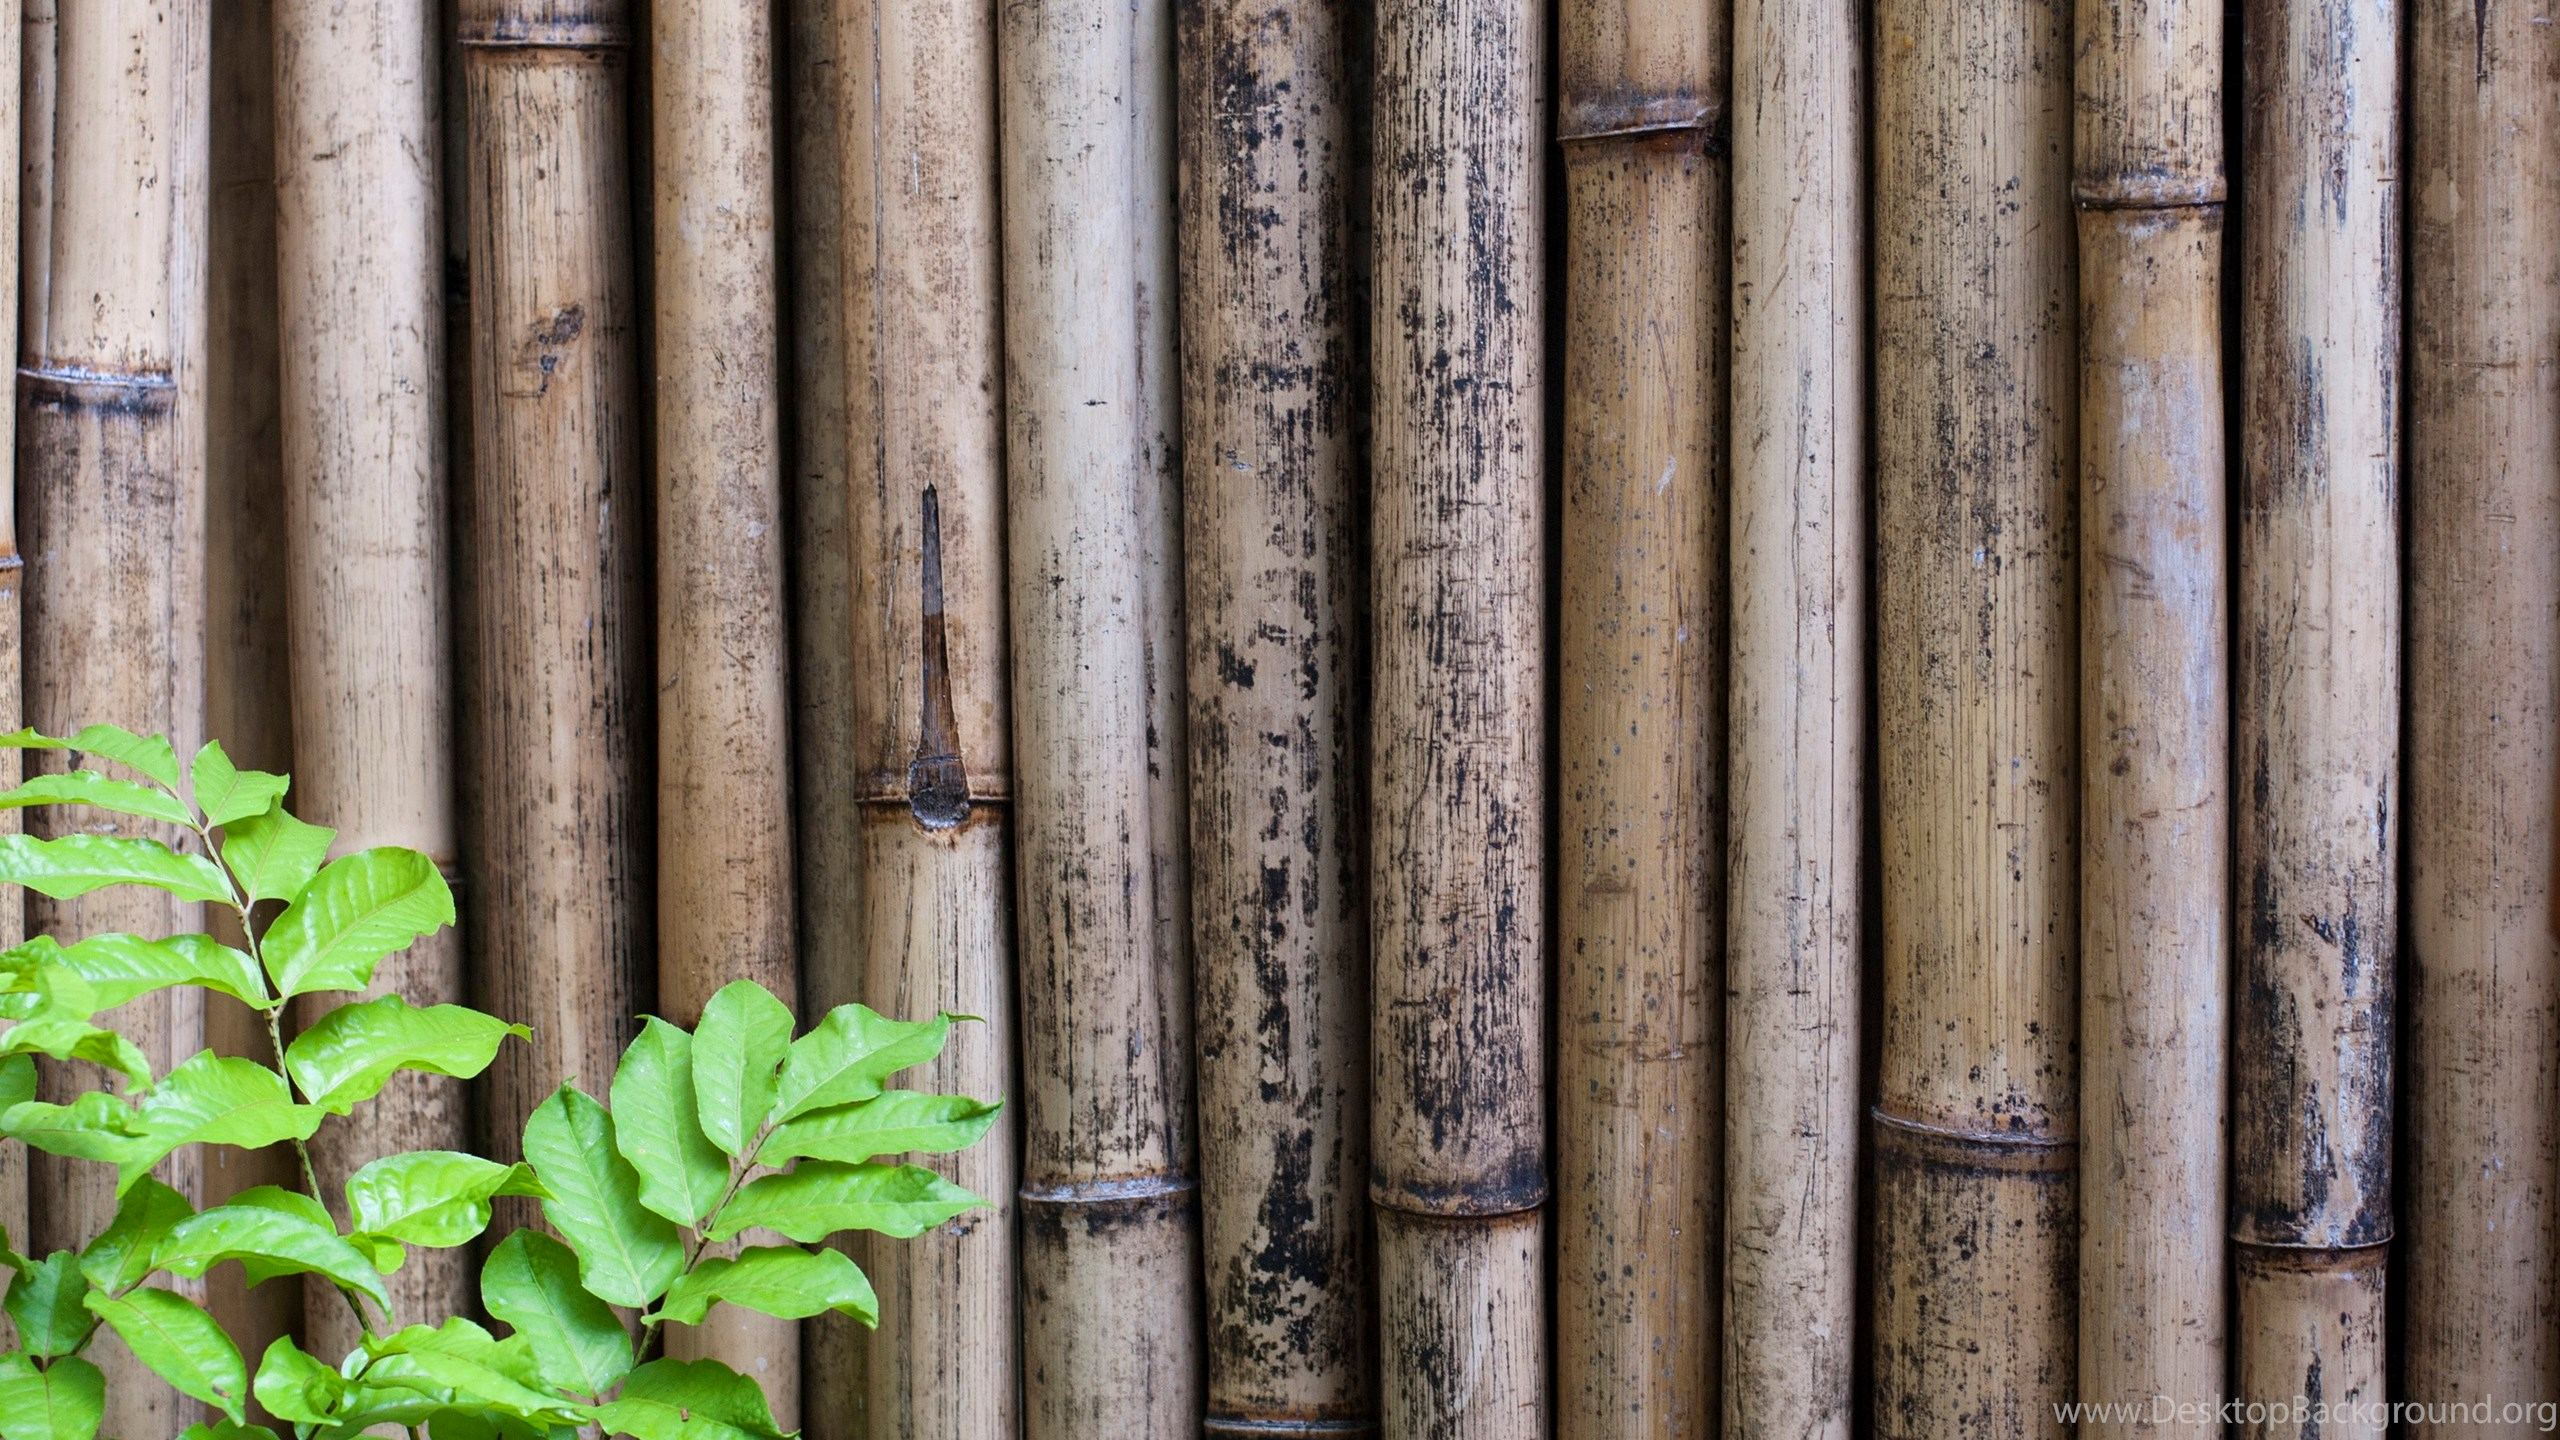 Free stock photo 6306 dried bamboo backgrounds desktop backg.